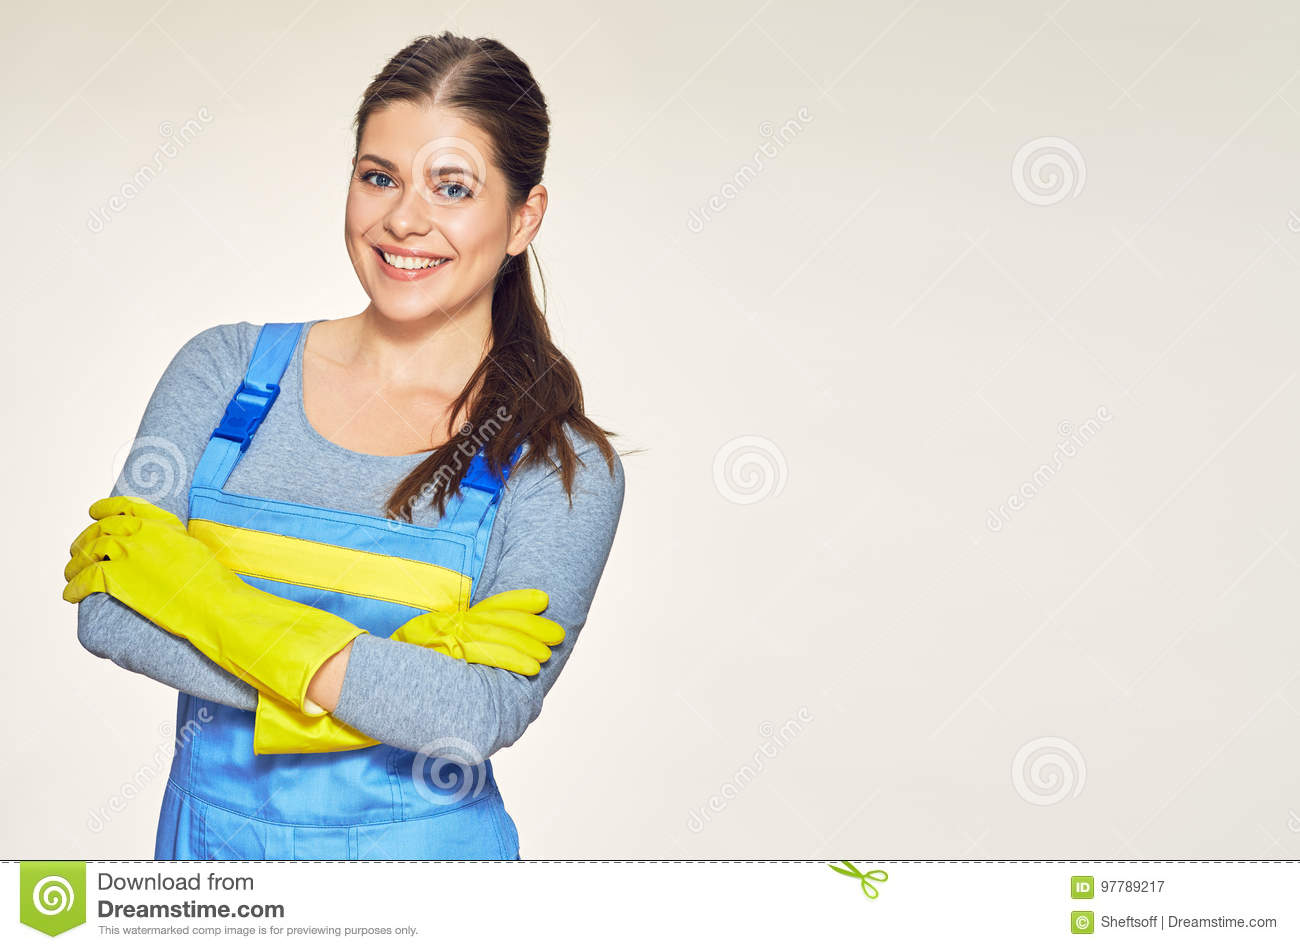 Portrait of smiling woman dressed cleaner uniform with crossed a